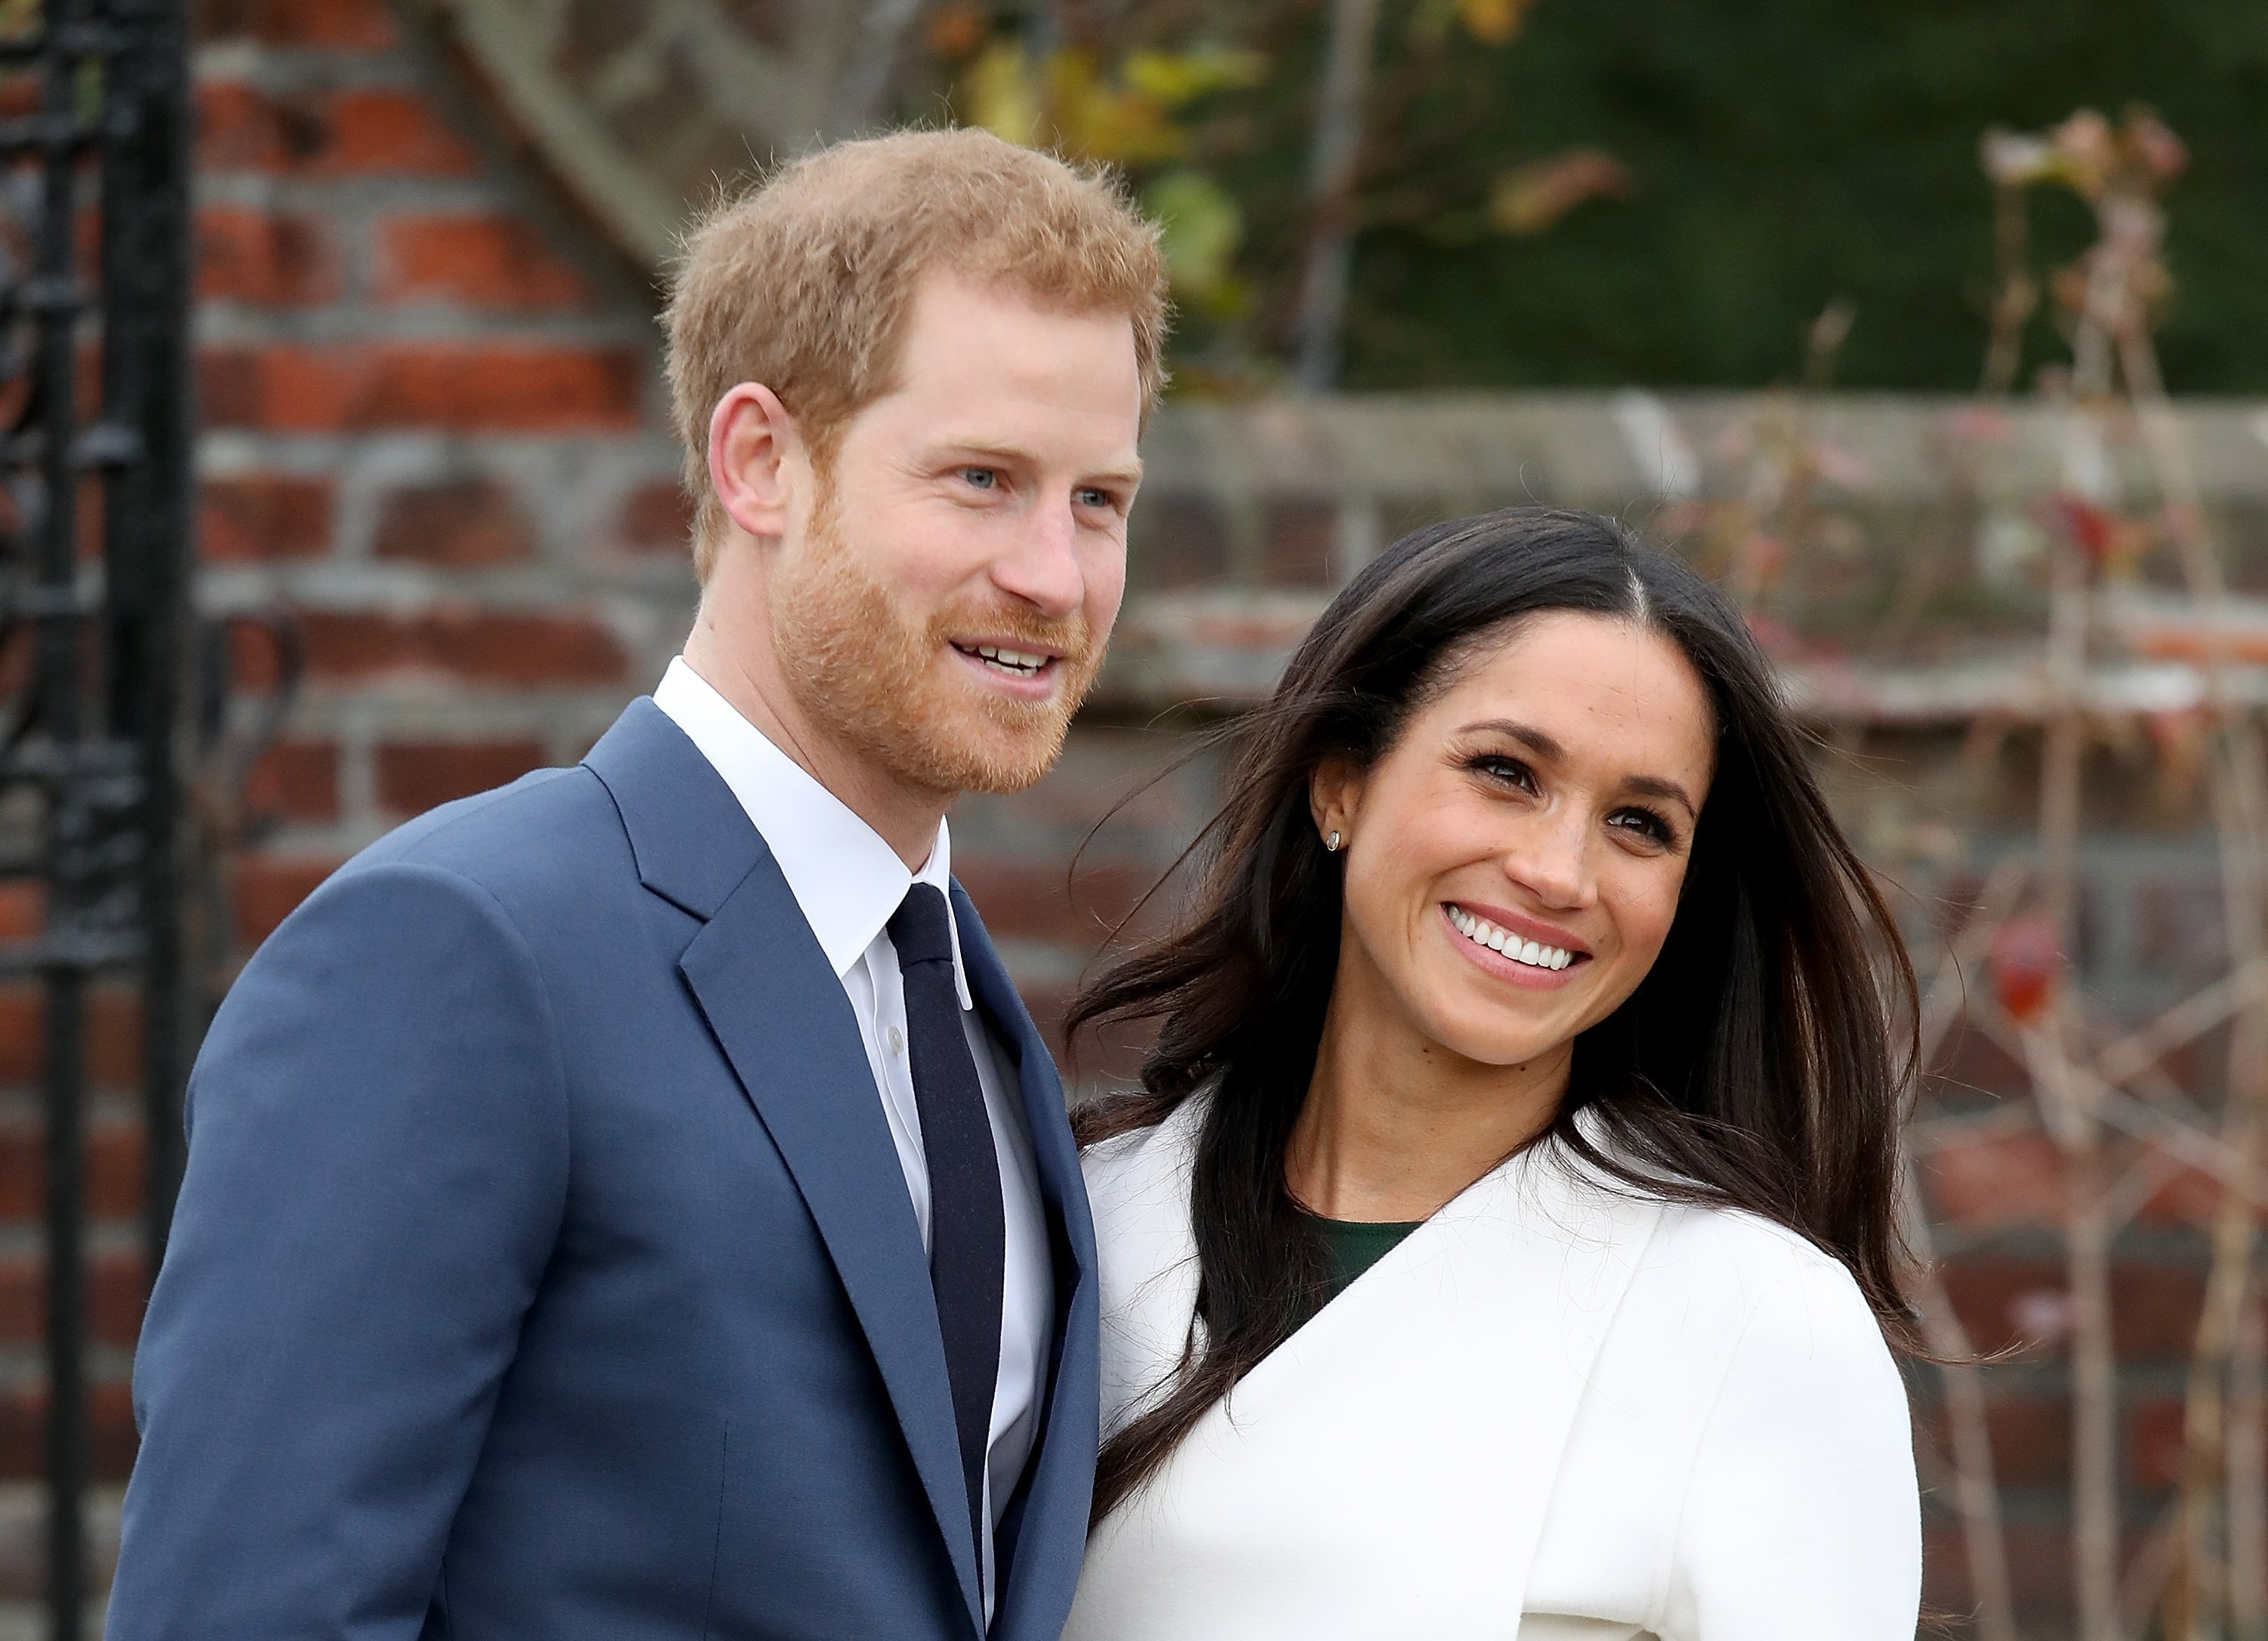 Prince Harry and actress Meghan Markle during an official photocall to announce their engagement at The Sunken Gardens at Kensington Palace on November 27, 2017|Photo: Getty Images